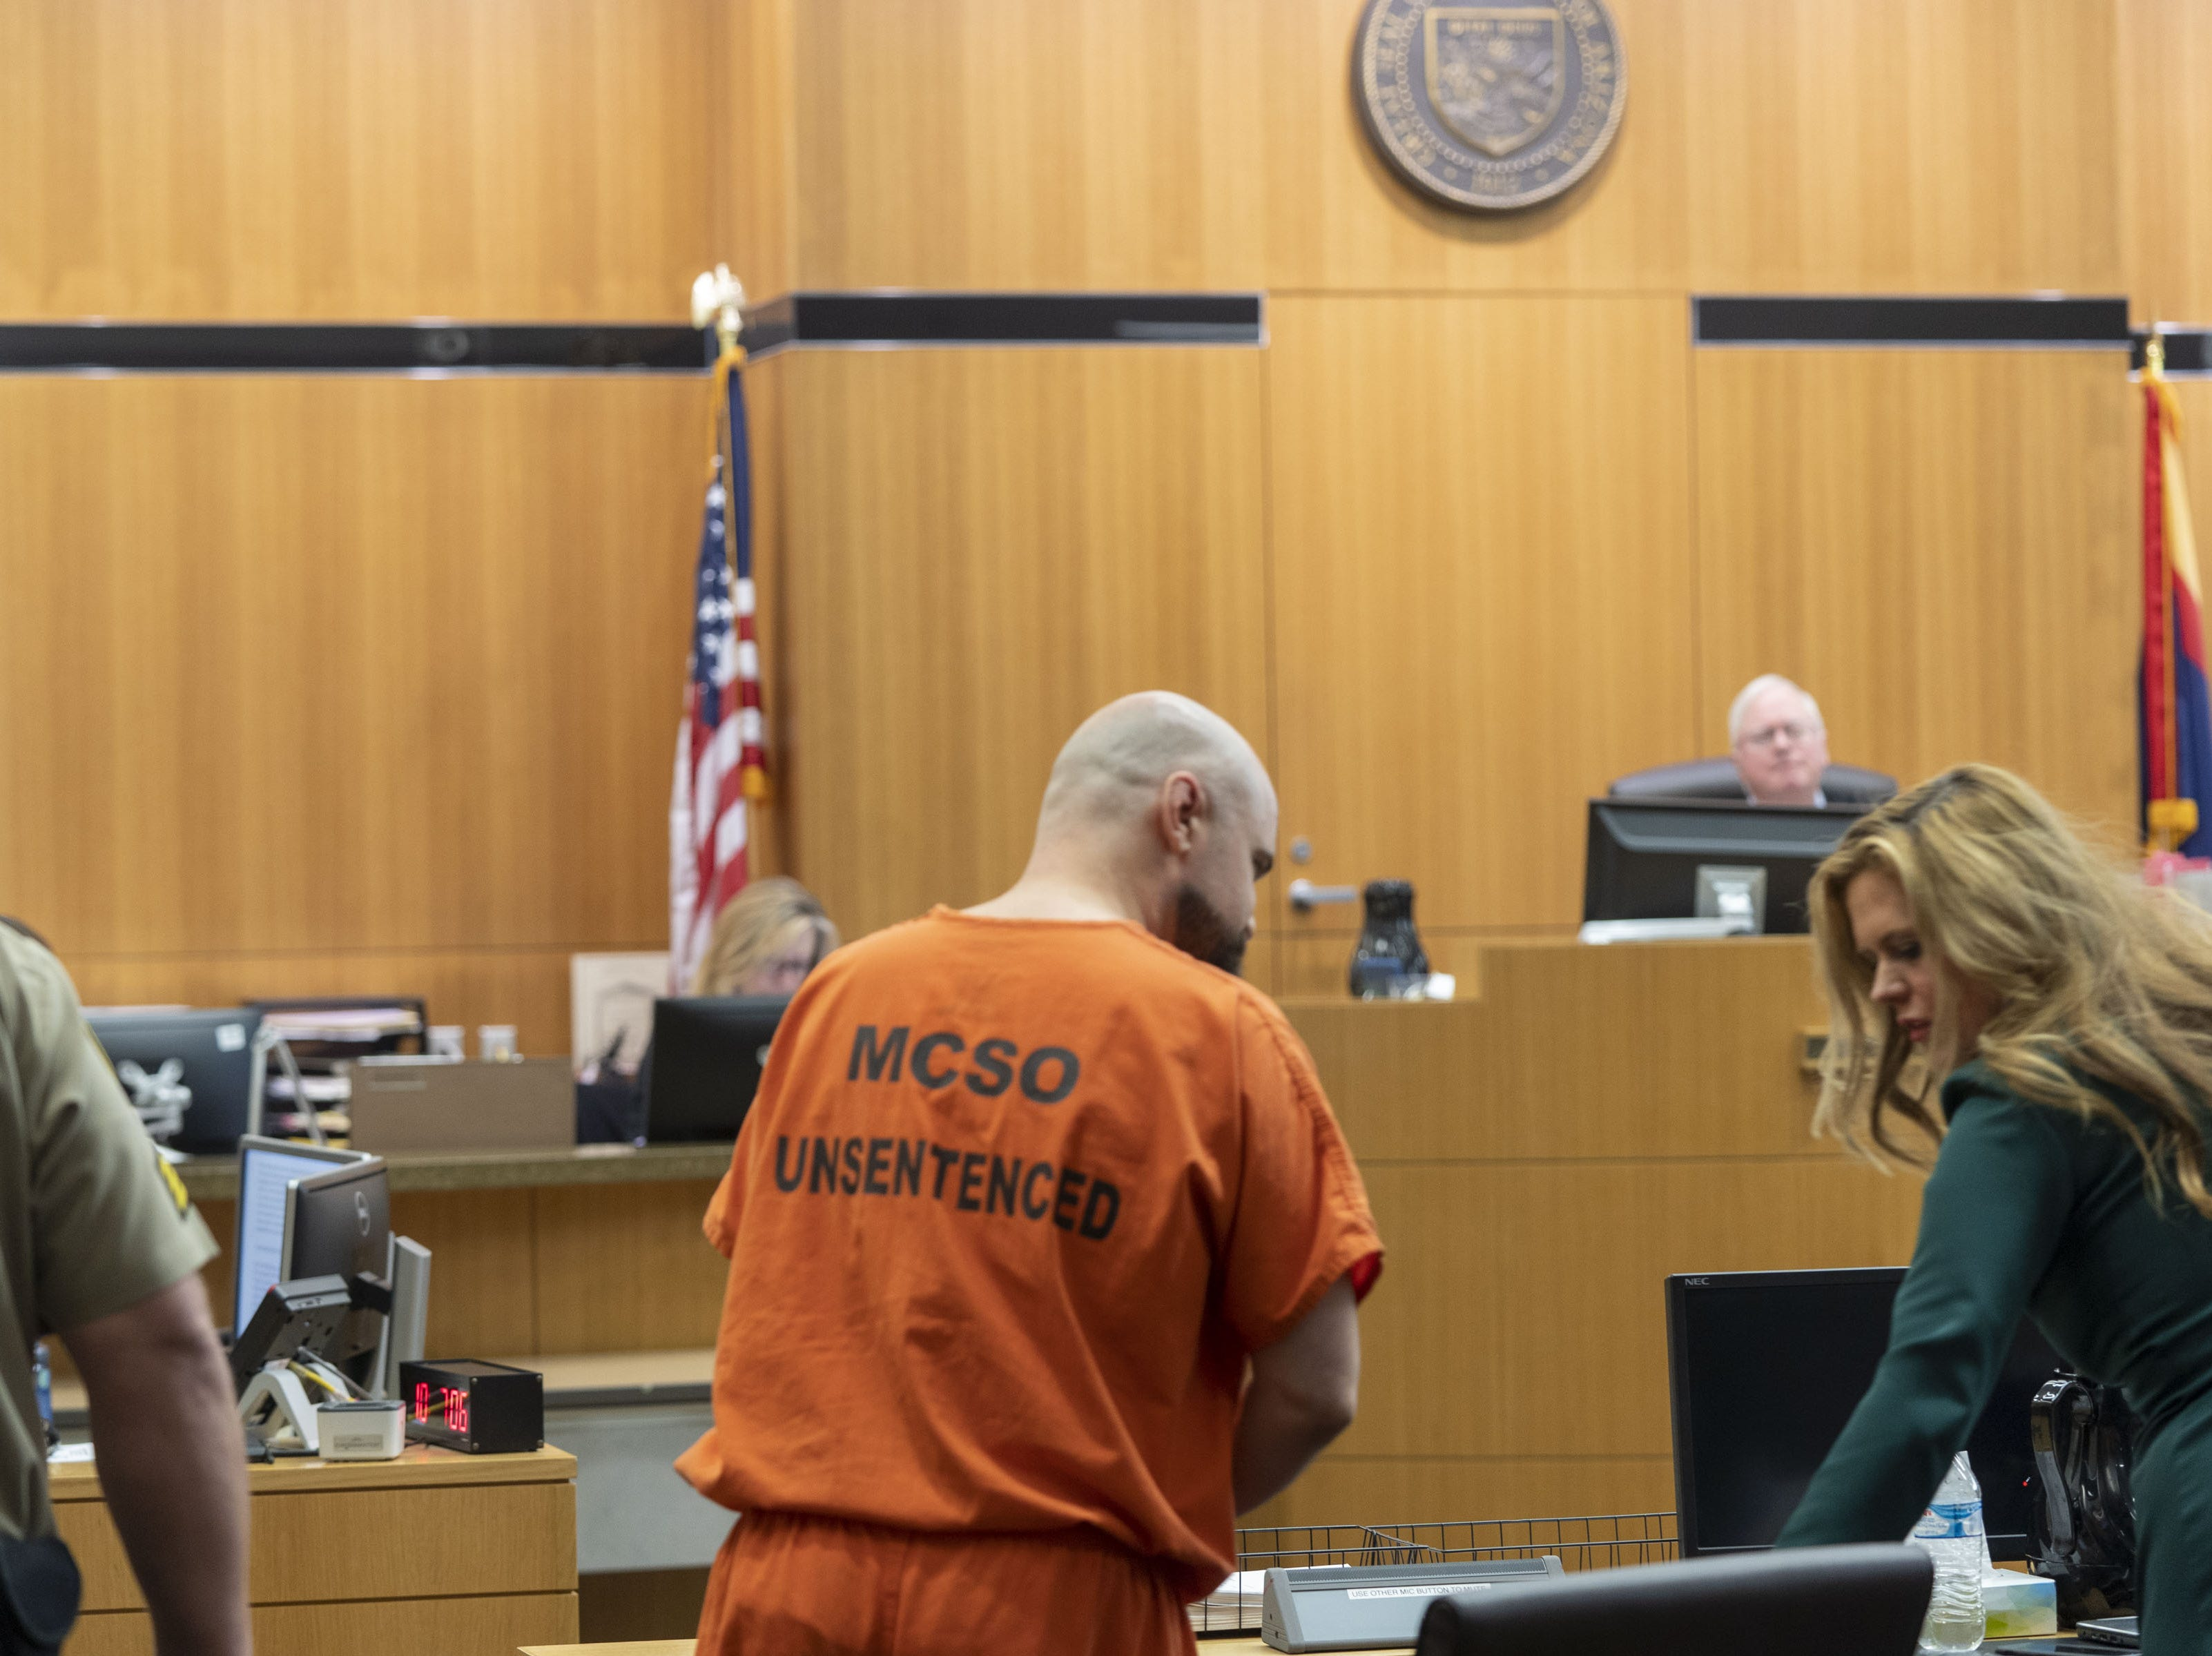 Judge Warren Granville sentenced Michael Crane life without parole for the first-degree murder of Bruce Gaudet, Glenna and Lawrence Shapiro, kidnapping, burglary, arson, and other charges at Maricopa County Superior Court on Friday, March 22, 2019.